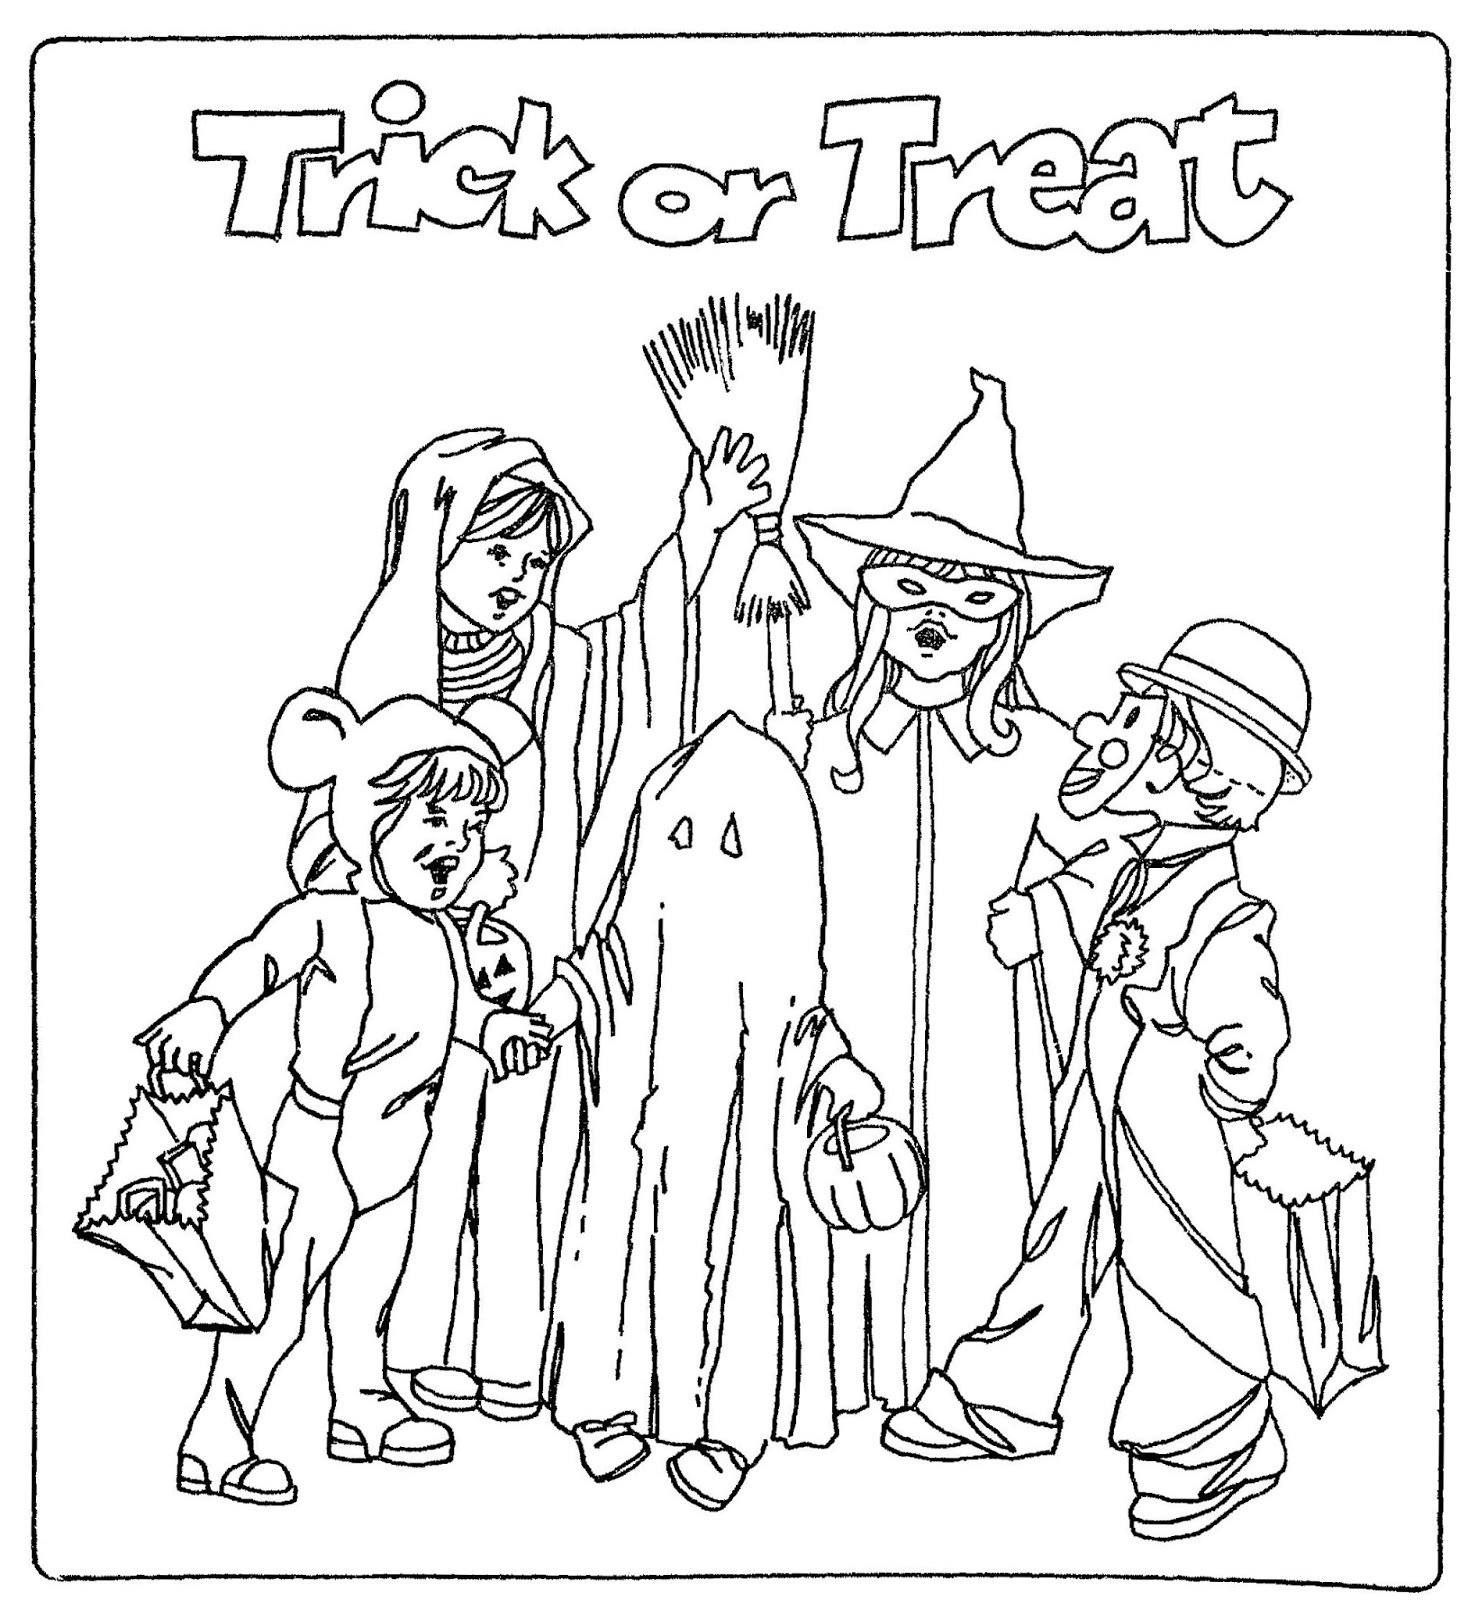 halloween trick or treaters coloring pages | Halloween 2019 trick or treat coloring pages printable for ...